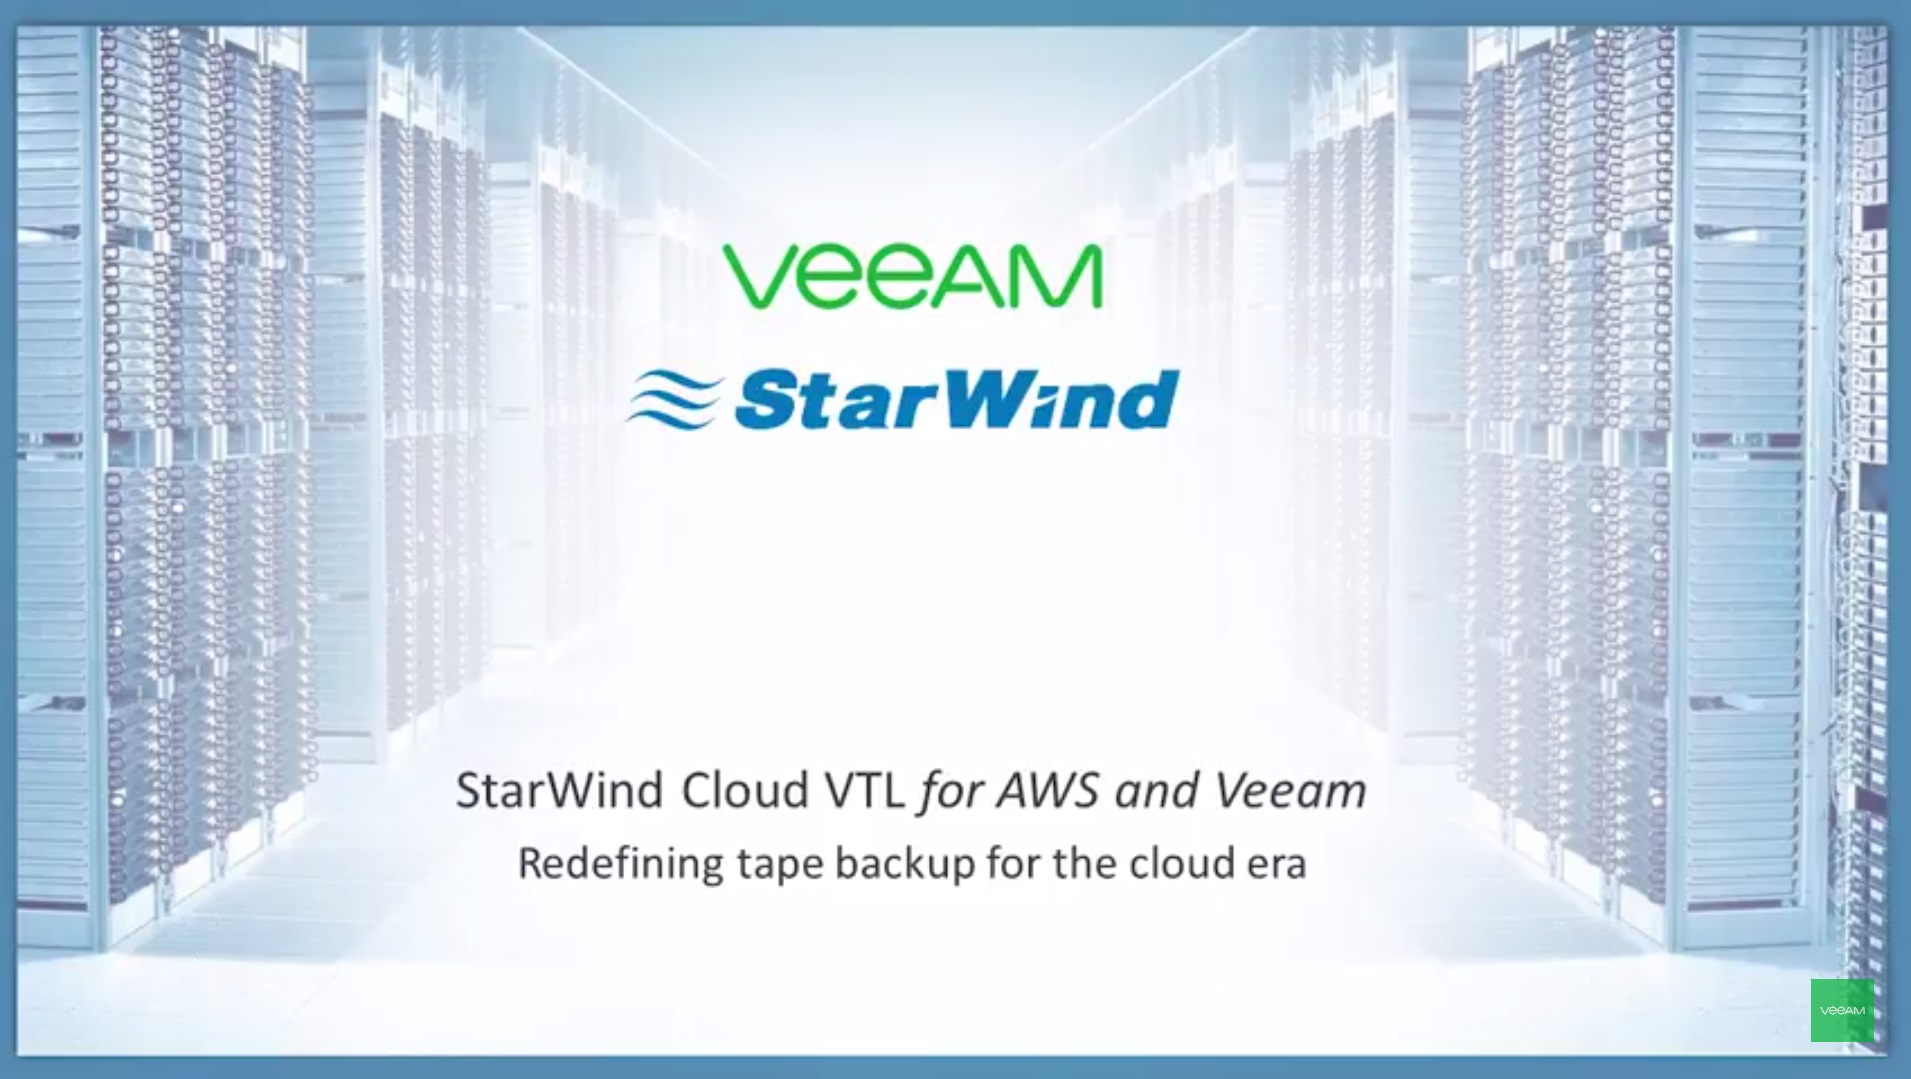 StarWind Cloud VTL for AWS and Veeam: redefining tape backup for the cloud era